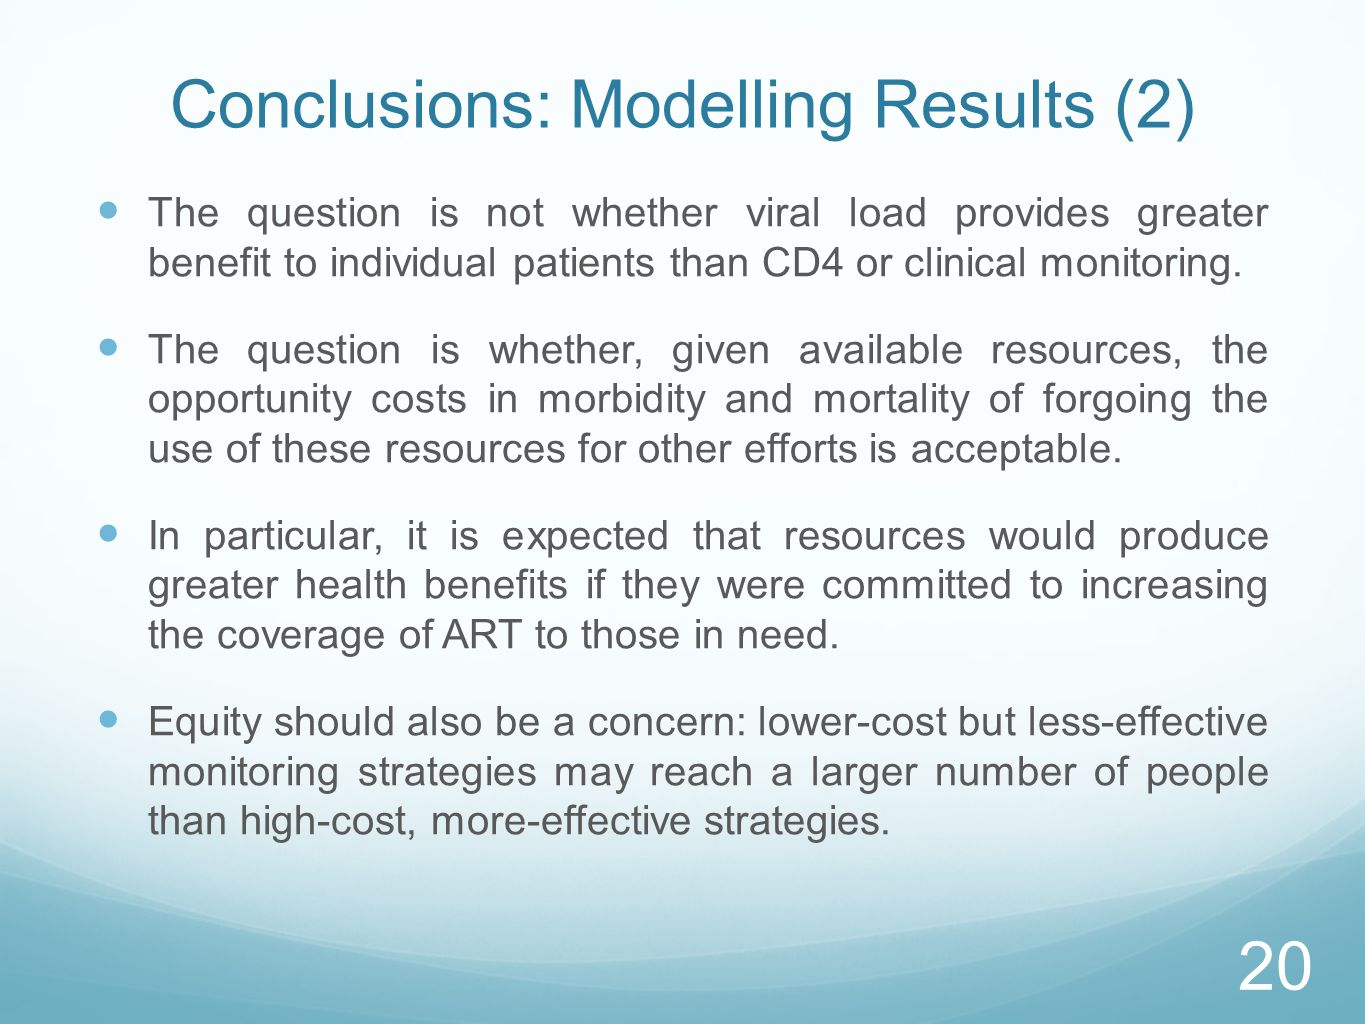 Conclusions: Modelling Results (2)